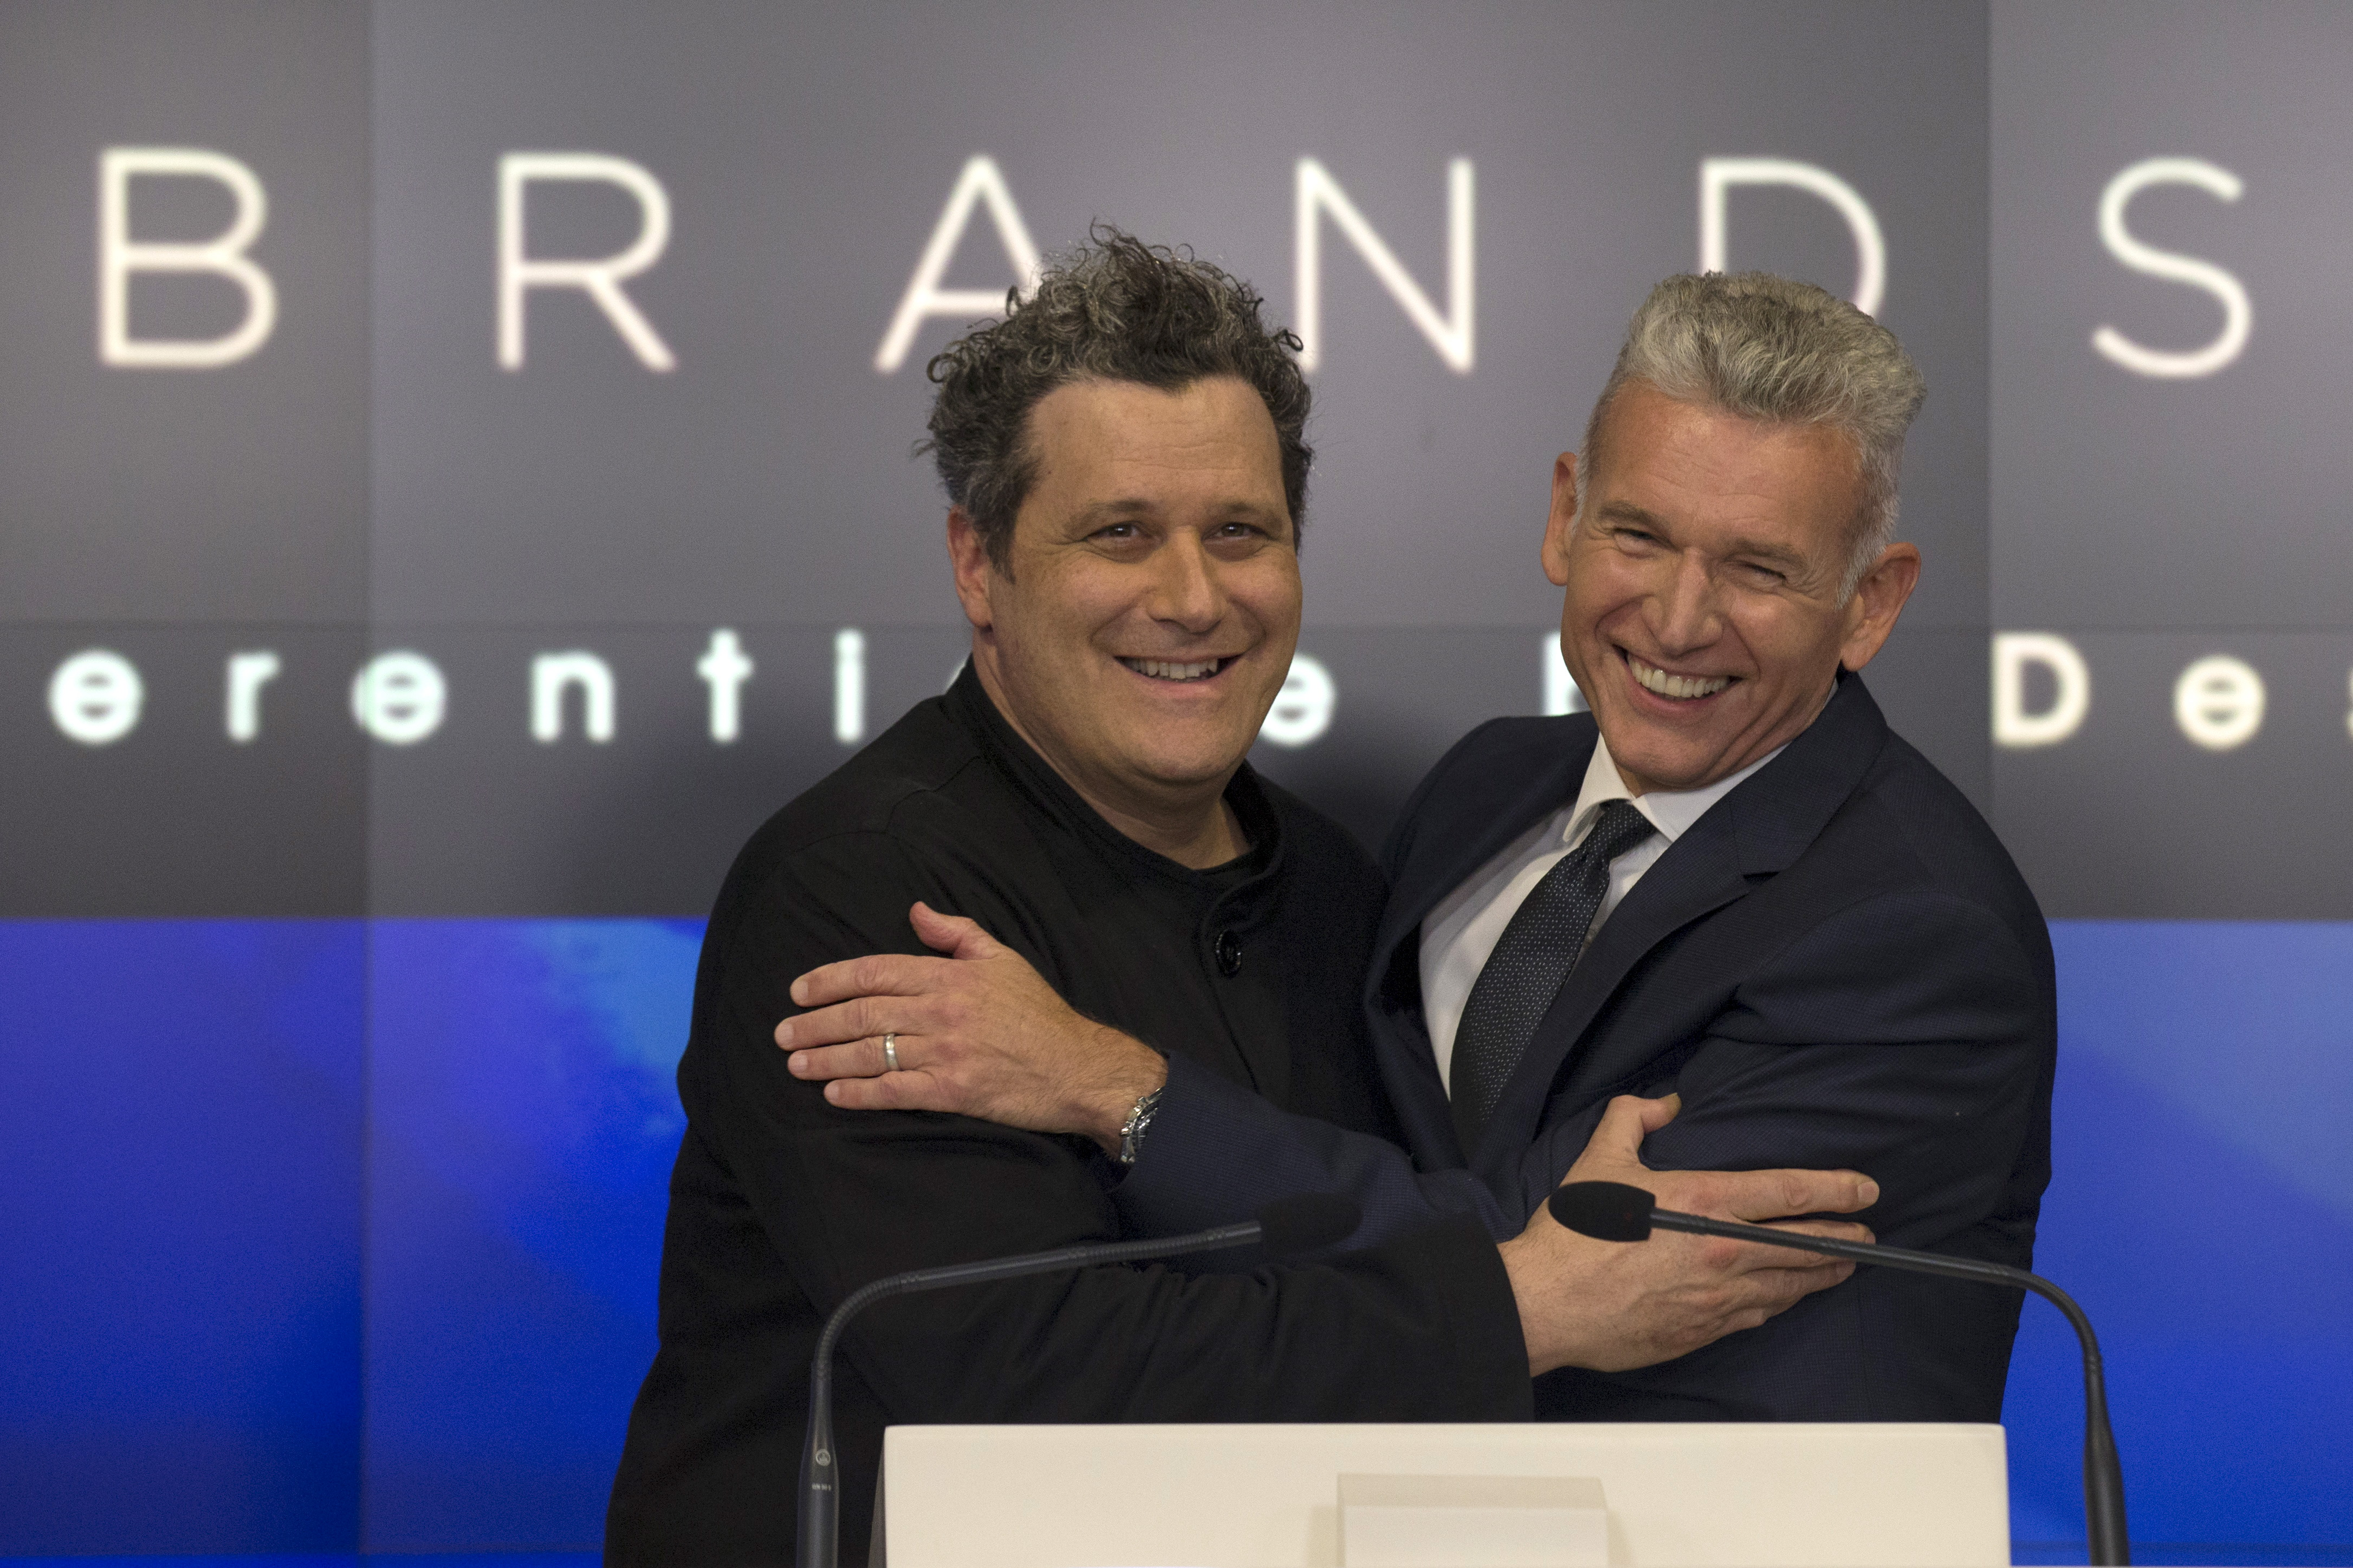 Designer Isaac Mizrahi (L) and Robert D'Loren, Chairman and Chief Executive Officer of Xcel Brands, Inc. pose together before ringing the closing bell at the Nasdaq Market site in New York September 2, 2015. REUTERS/Brendan McDermid - RTX1QT76